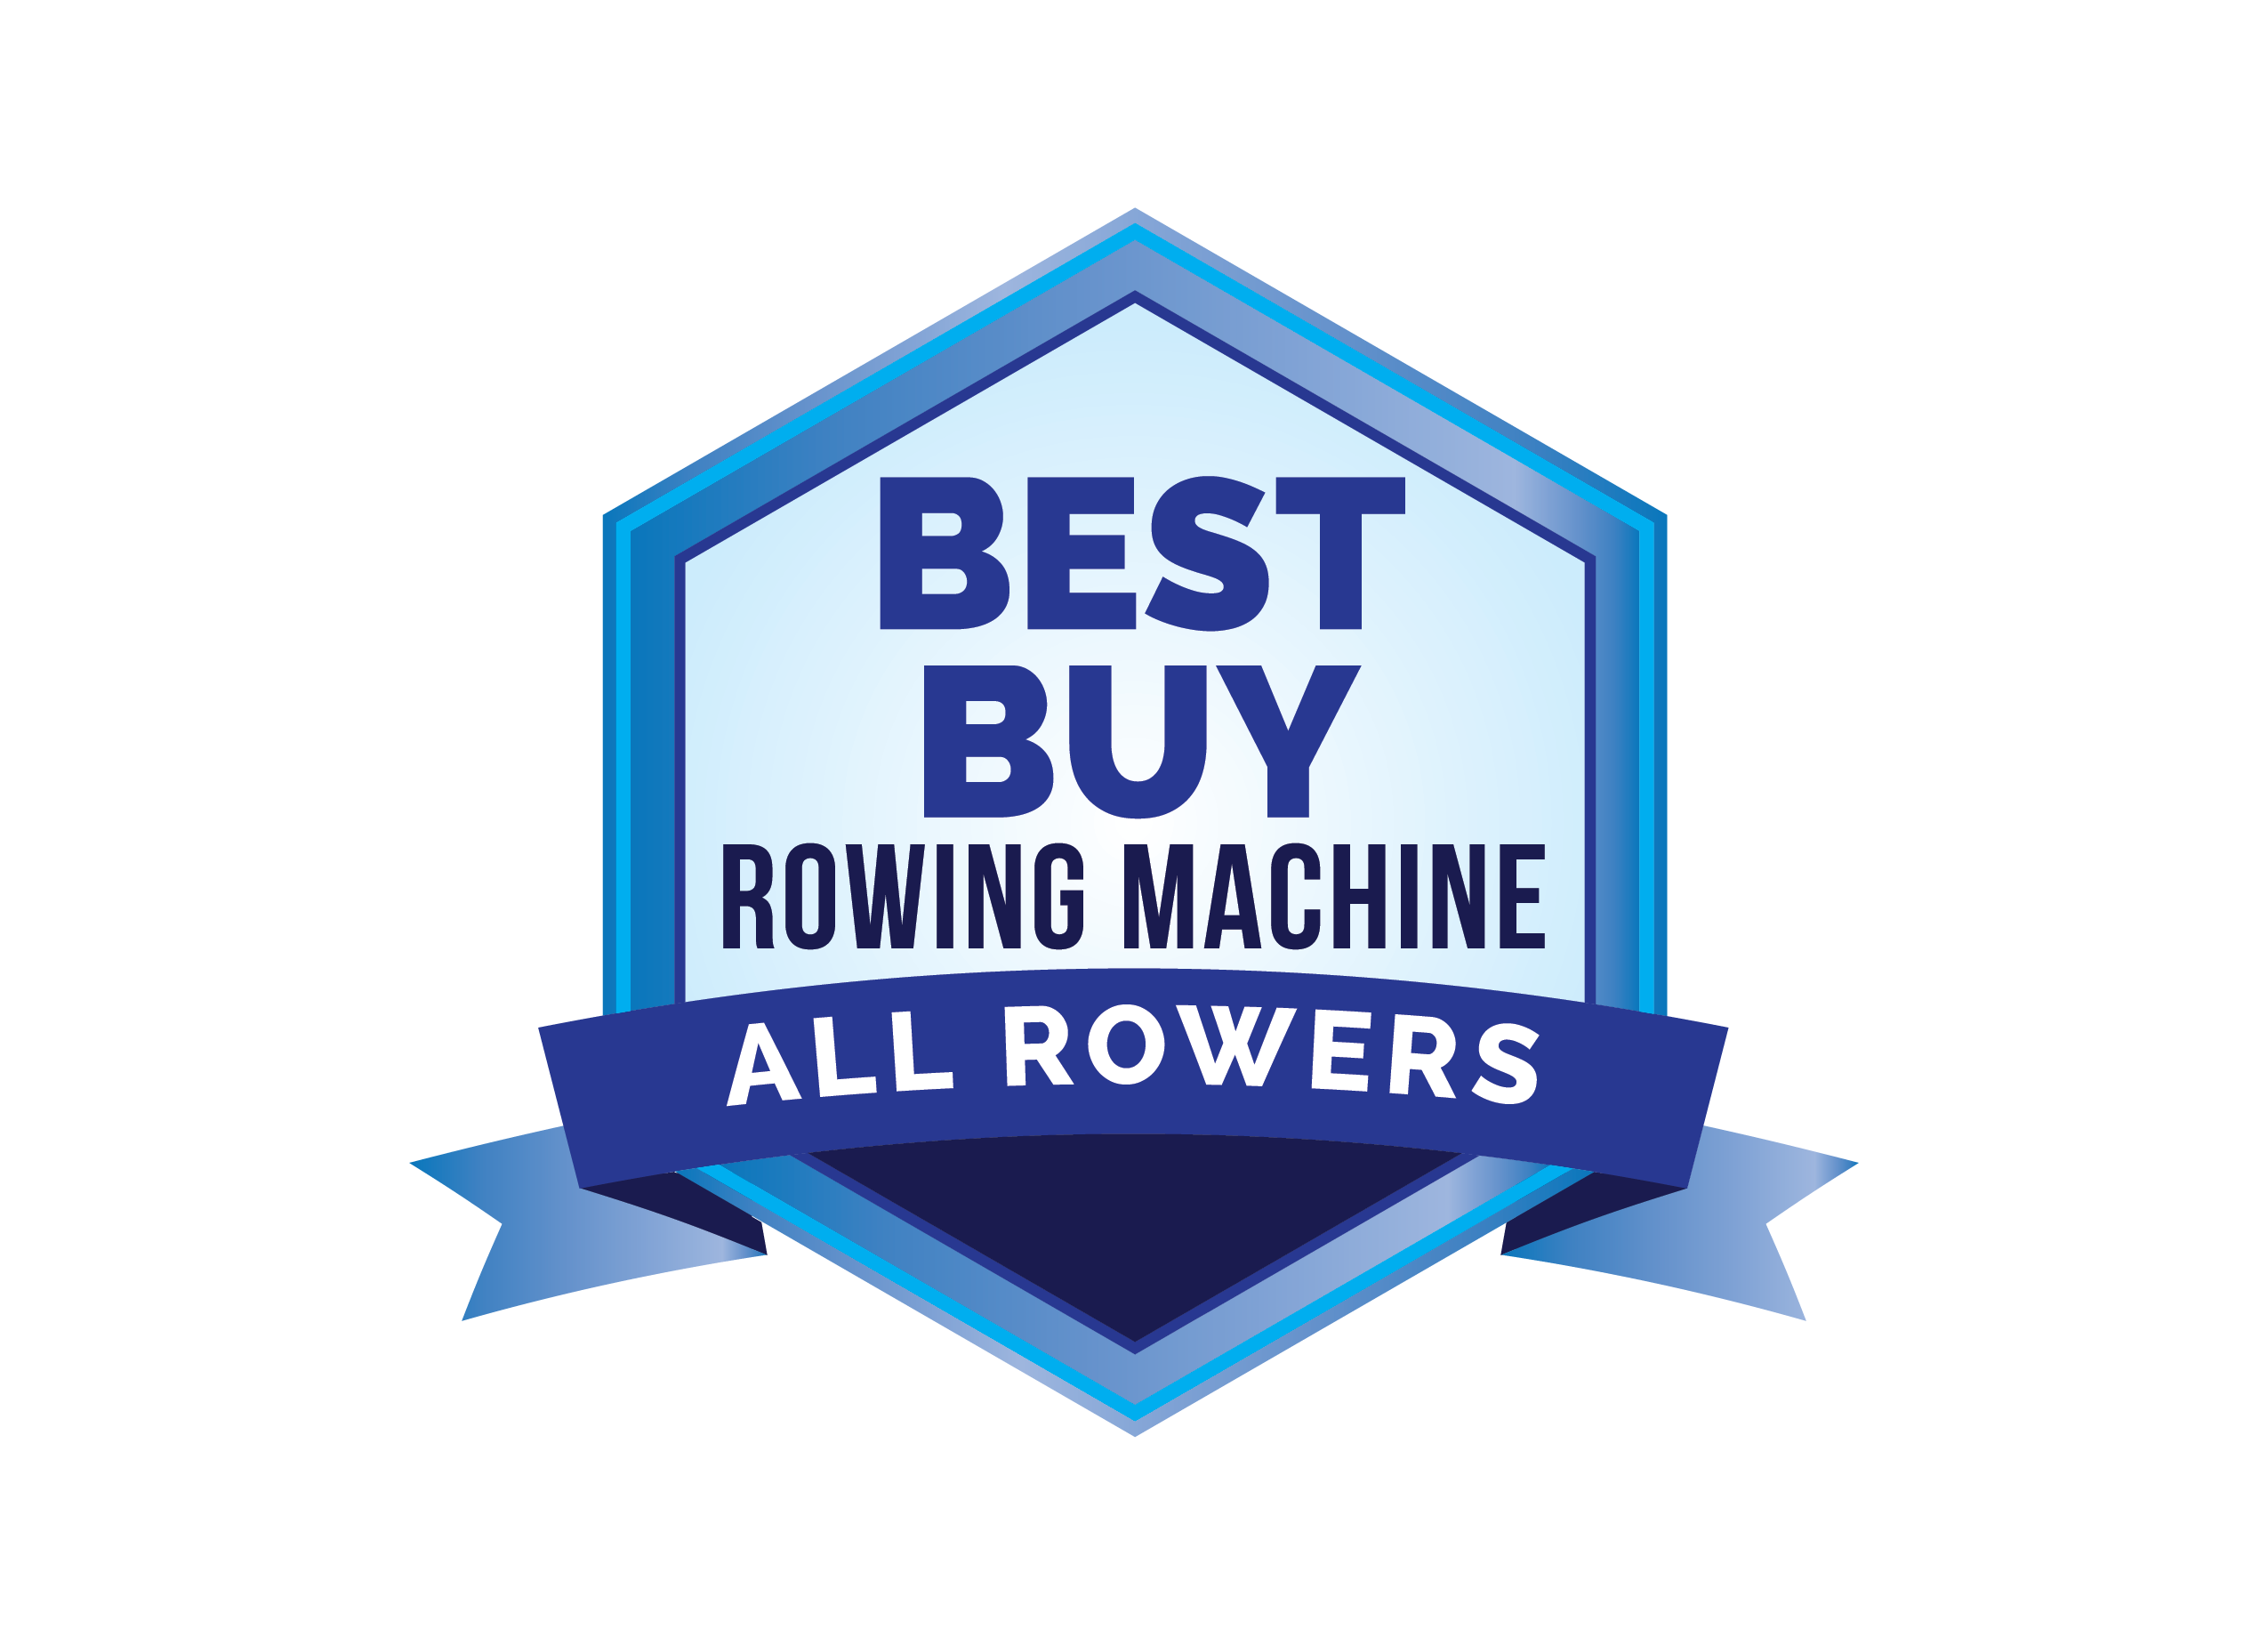 All Rowers Best Buy Rowing Machines